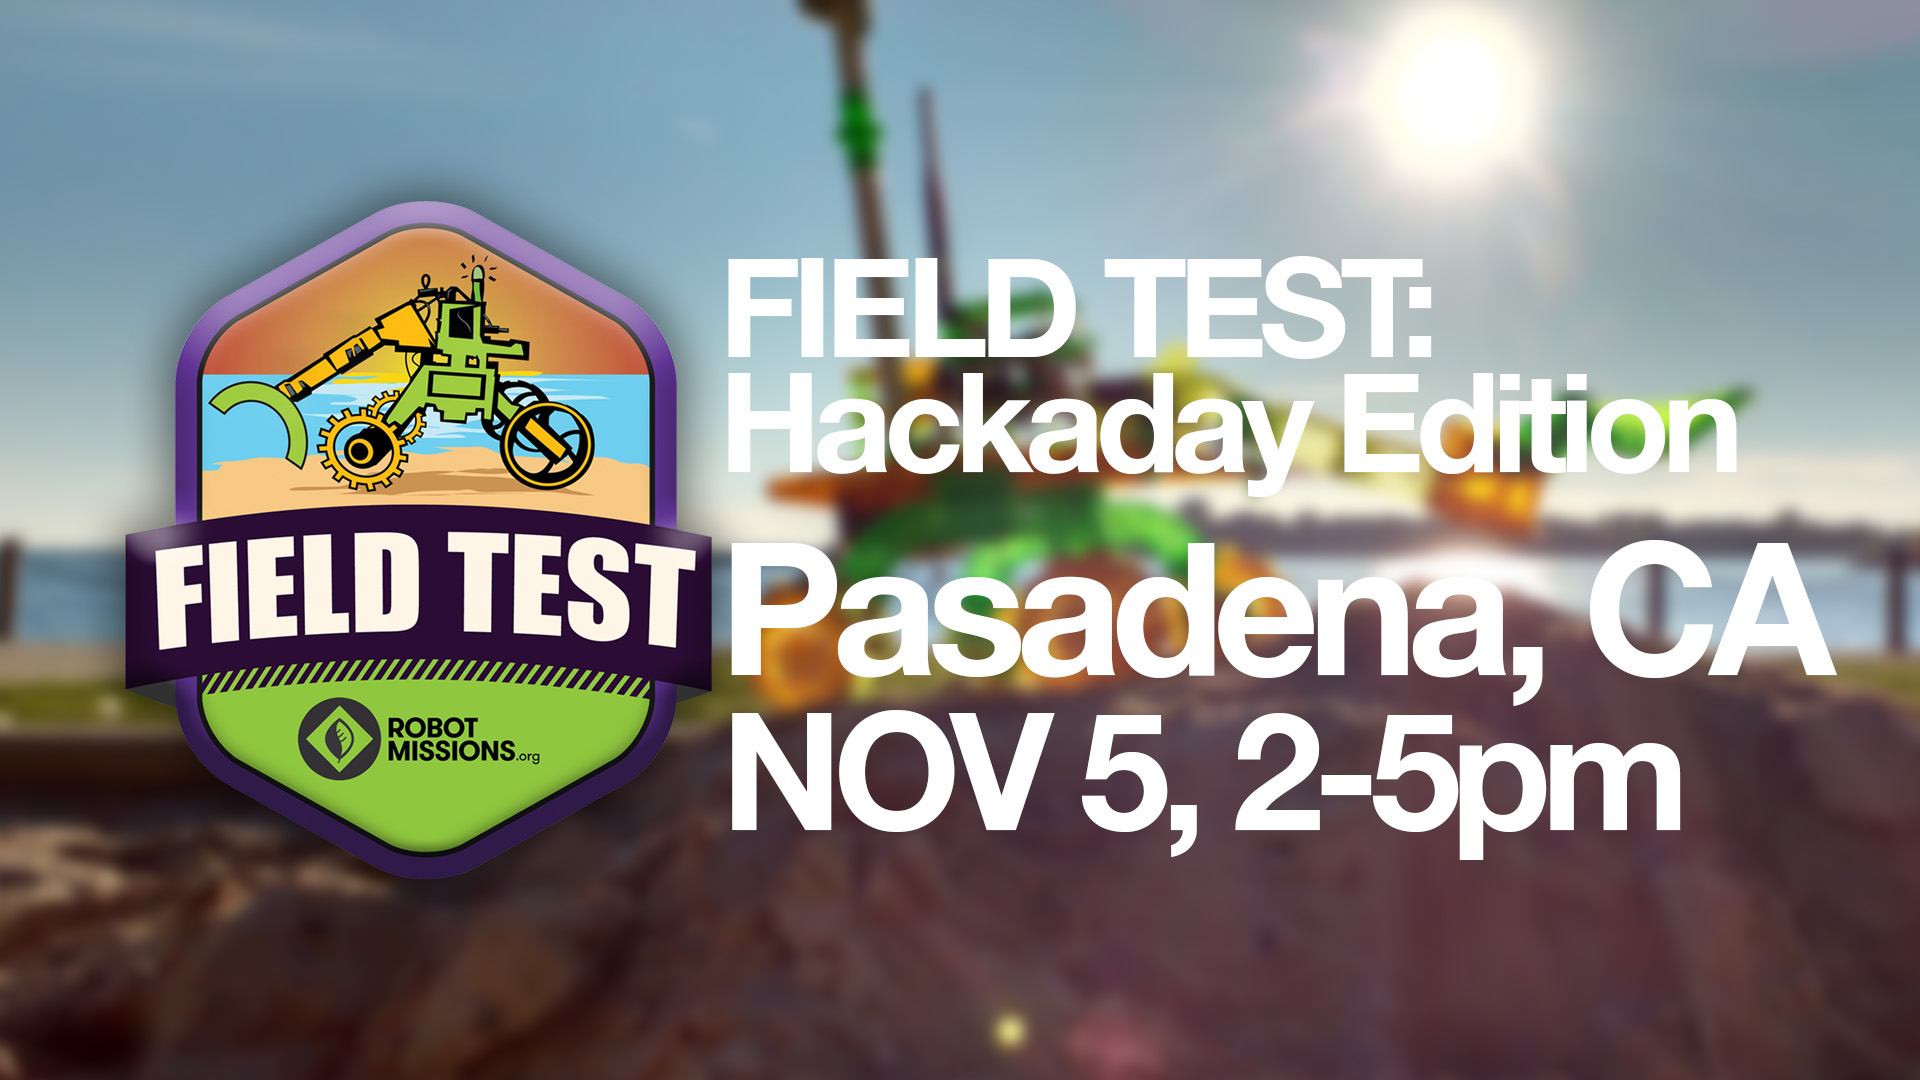 FIELD TEST – Special Hackaday Edition